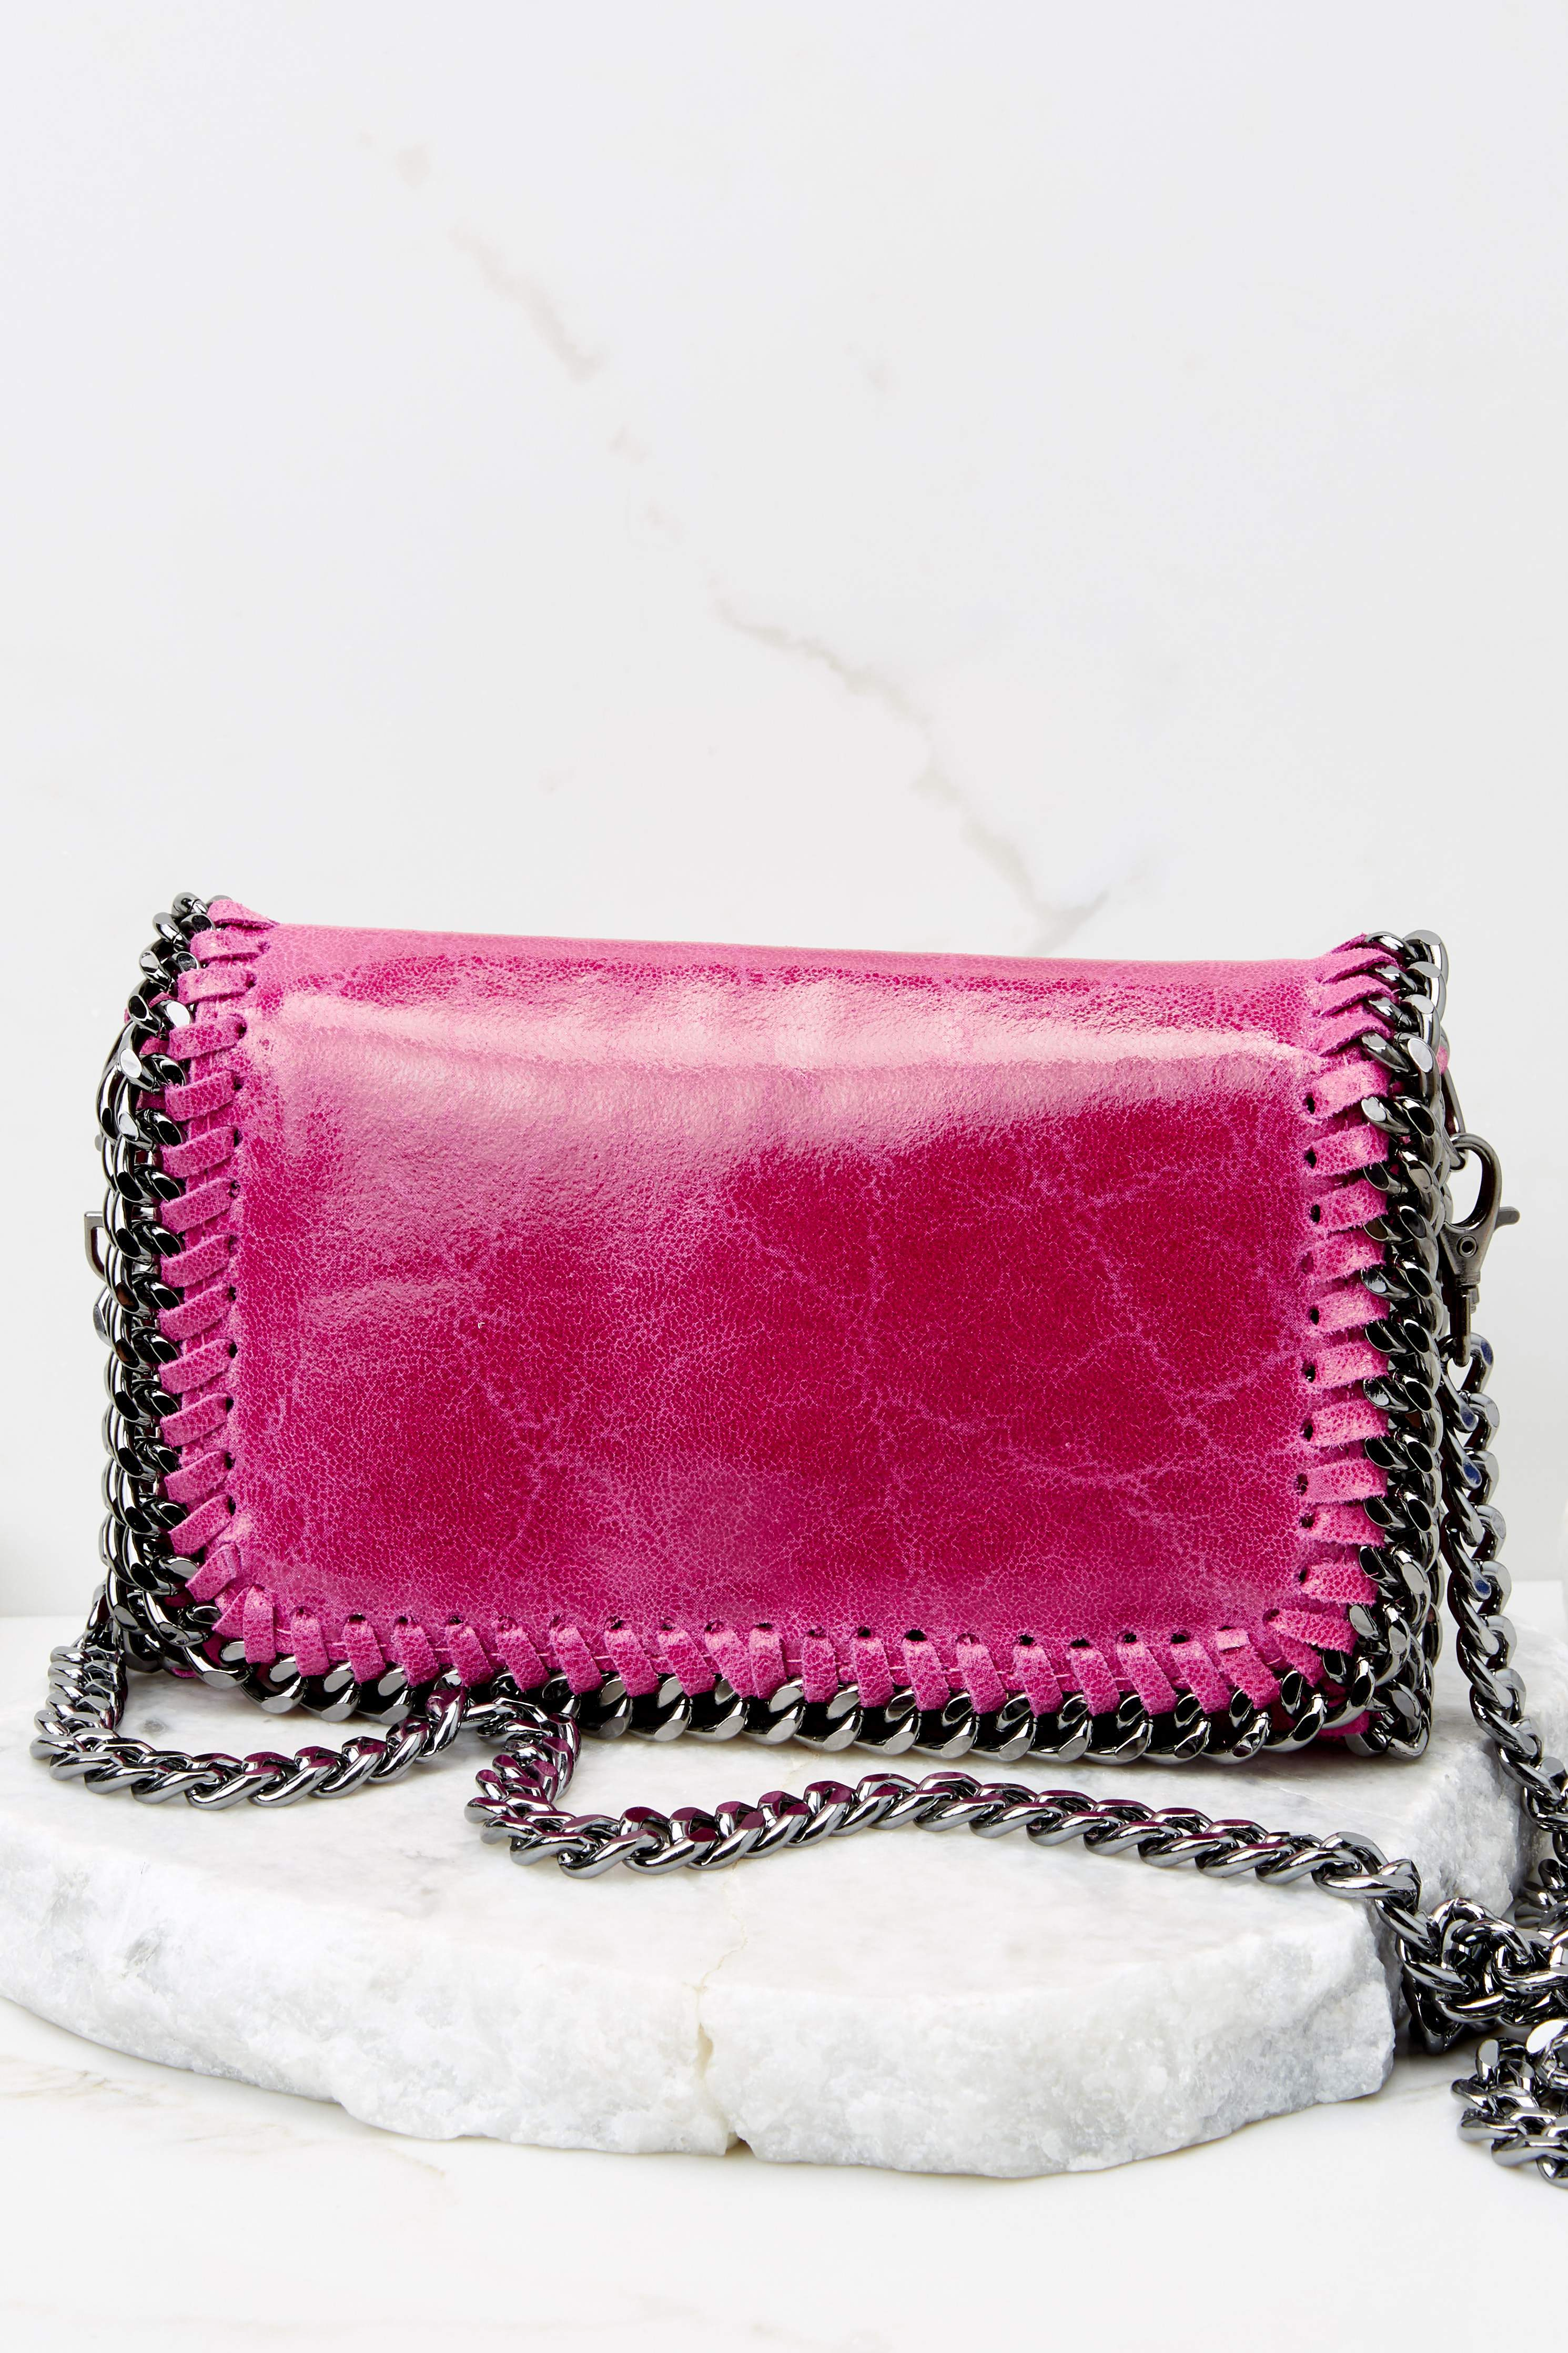 In The Night Hot Pink Clutch